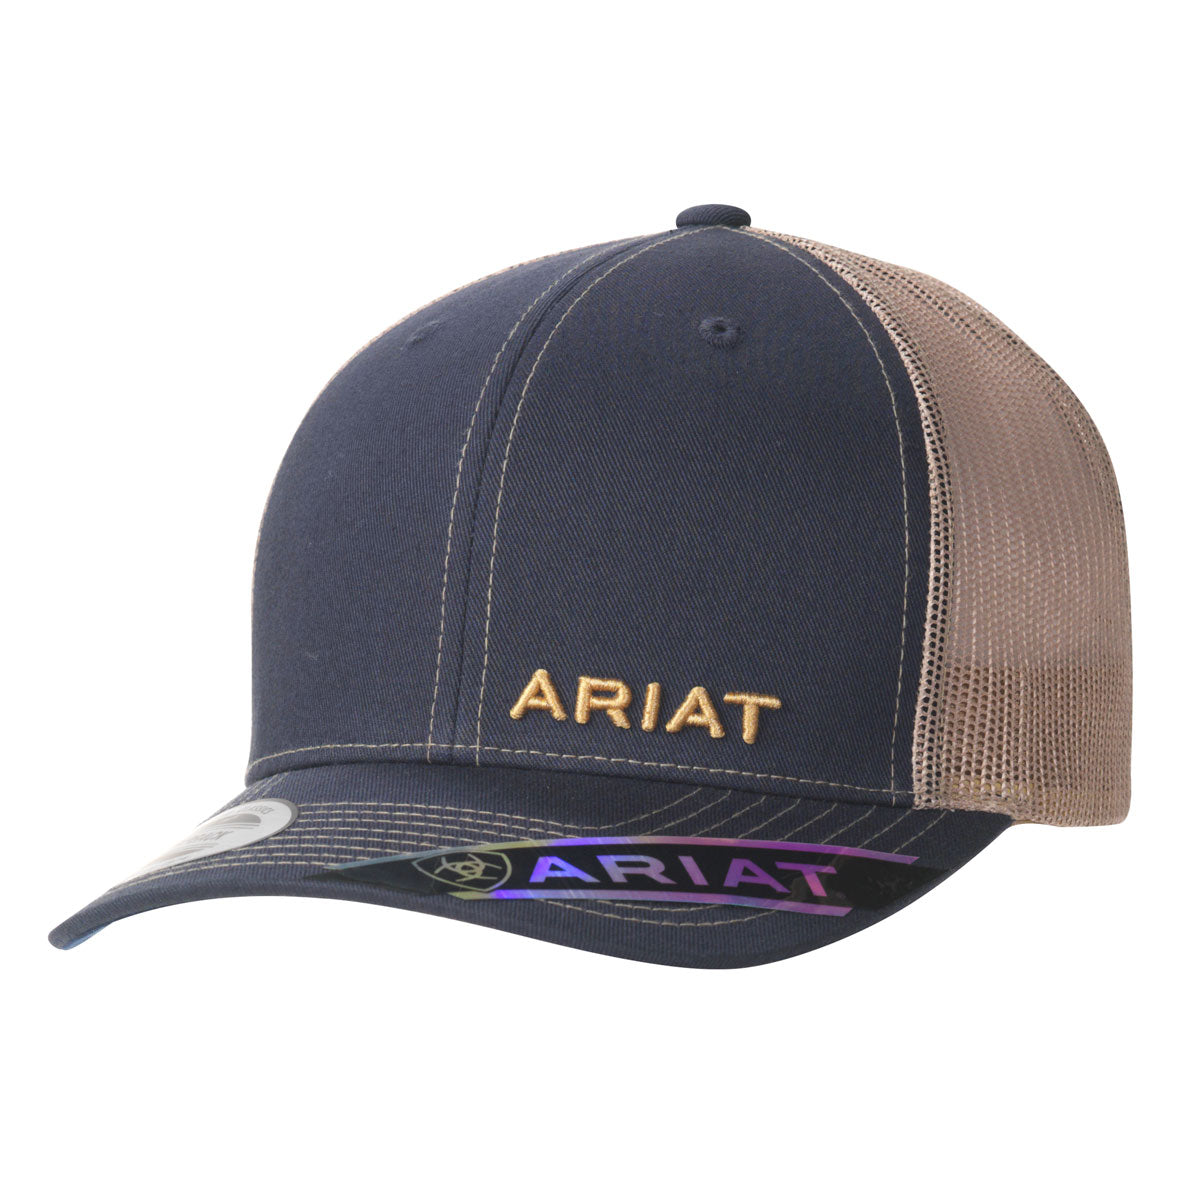 Ariat Offset Text Logo Navy and Tan Cap